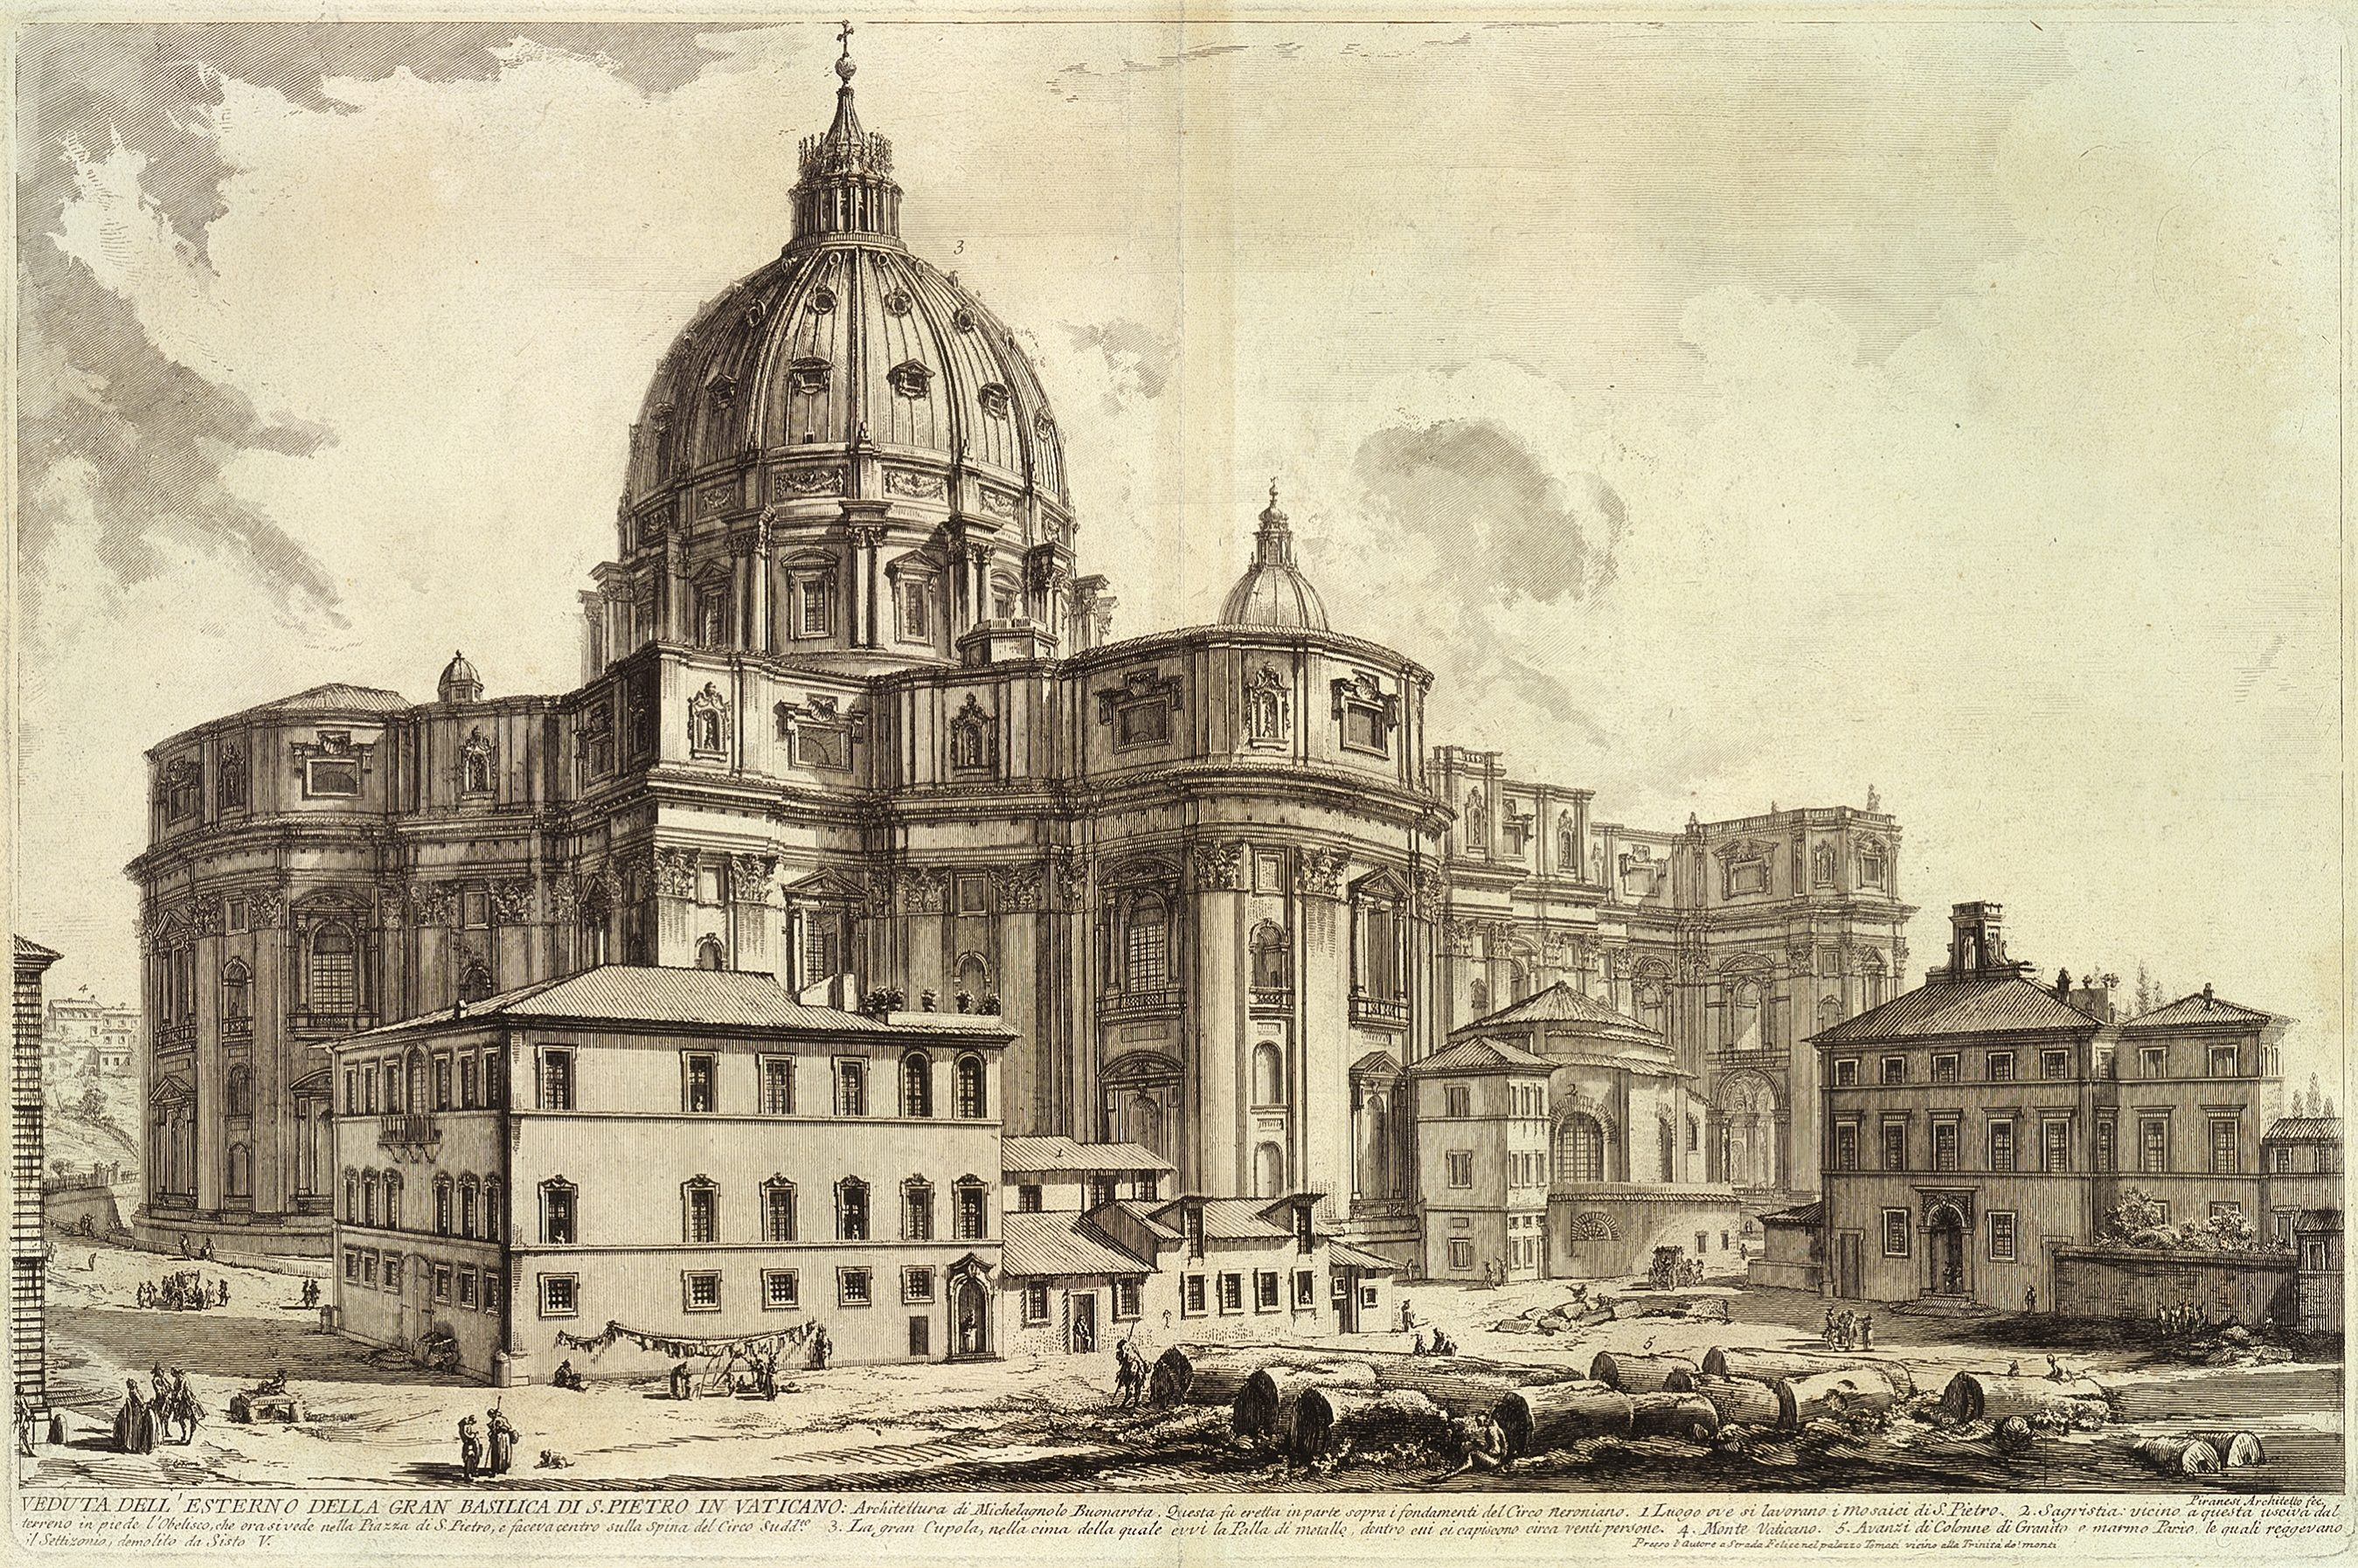 "Photo of ""View of the Exterior of St. Peter's Basilica in the Vatican"" by Giovanni Battista Piranesi, image shows an etching featuring St. Pete's Basilica with groups of figures around the massive building going about daily life"